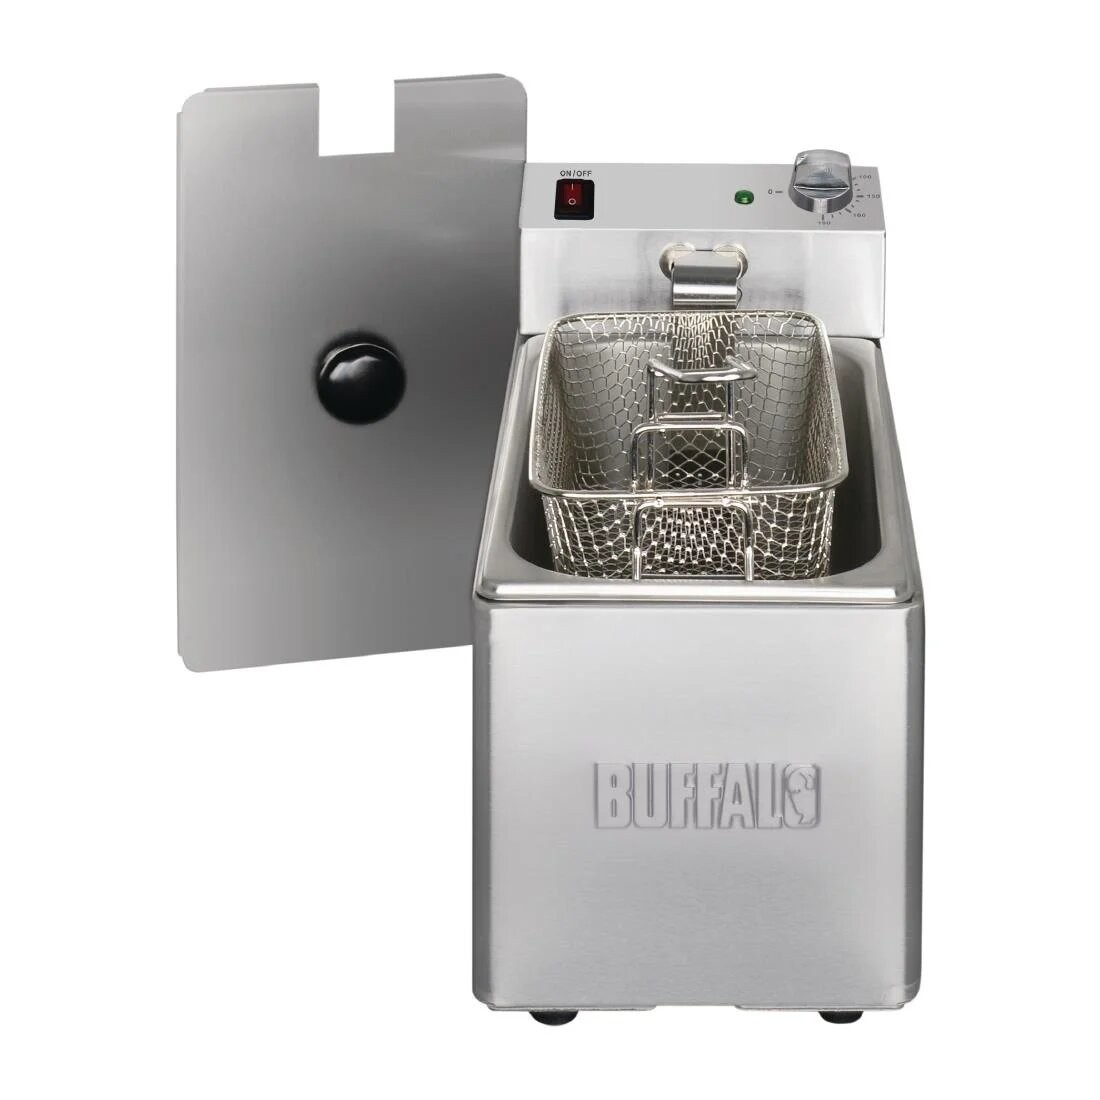 Buffalo FC255 Single Tank Countertop Fryer